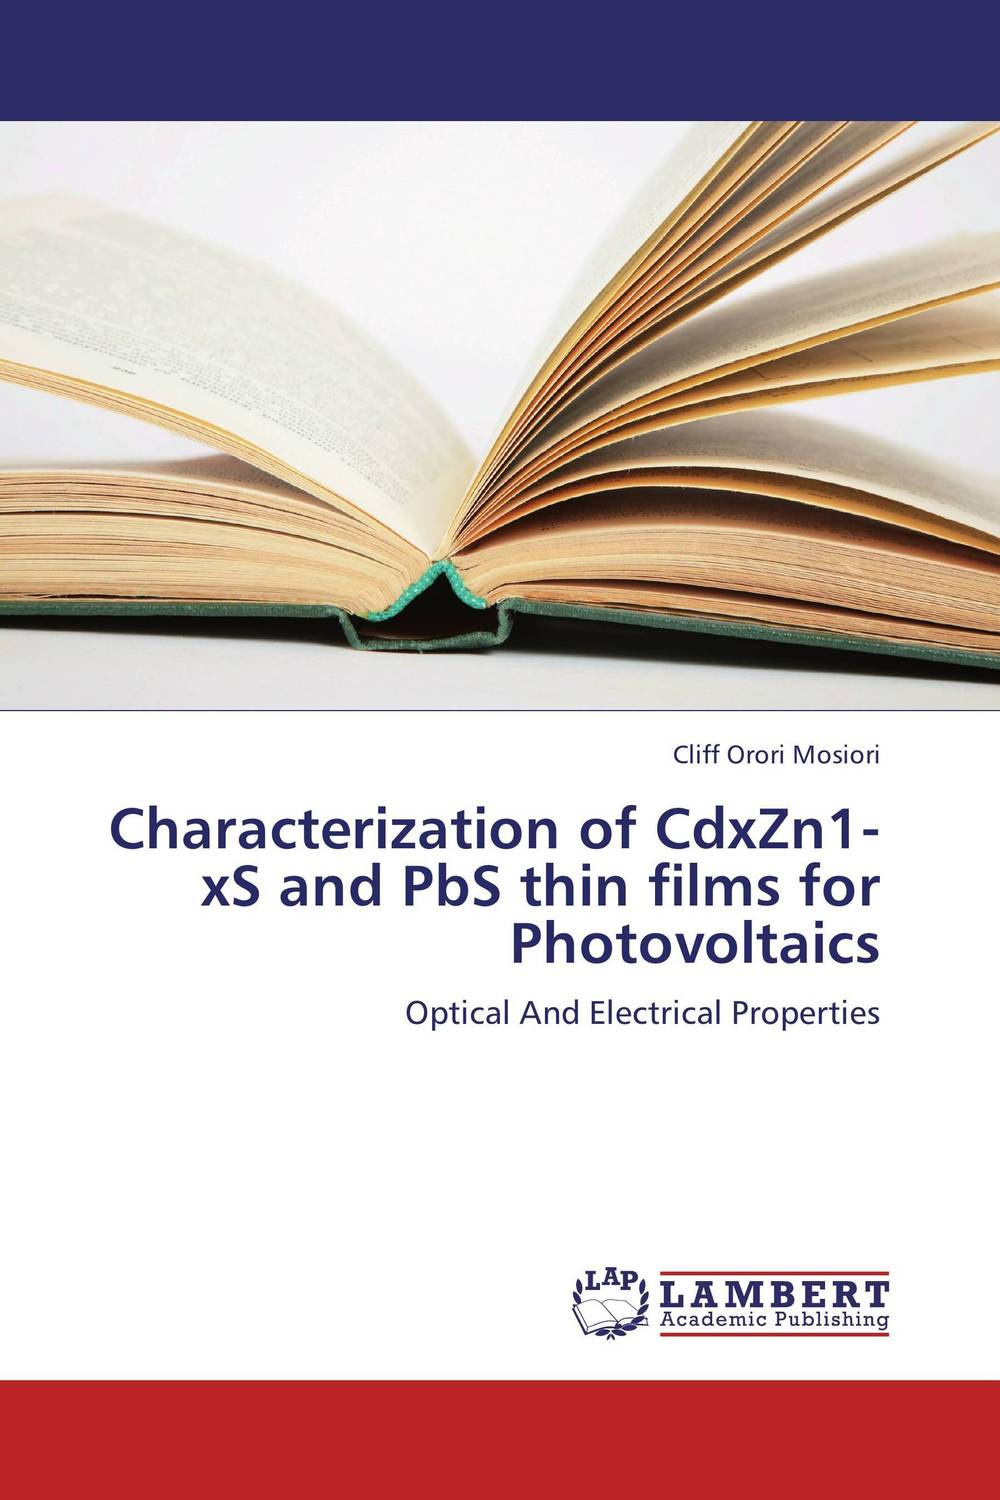 Characterization of CdxZn1-xS and PbS thin films for Photovoltaics michael quinten a practical guide to optical metrology for thin films